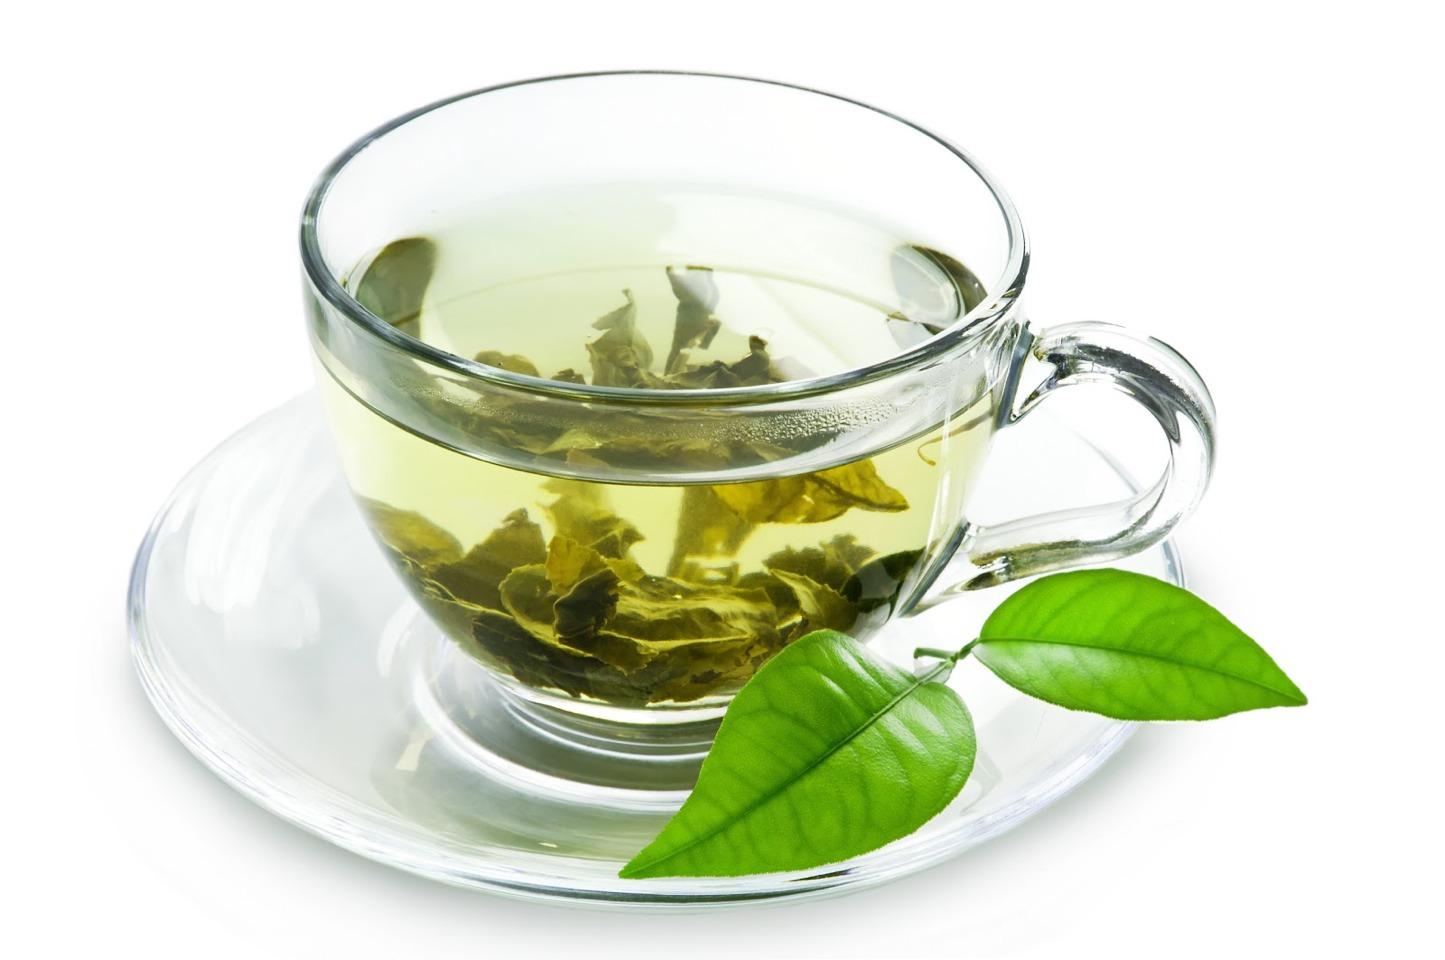 1tbs of ALL NATURAL green tea and 1tbs of the dried green tea leaves